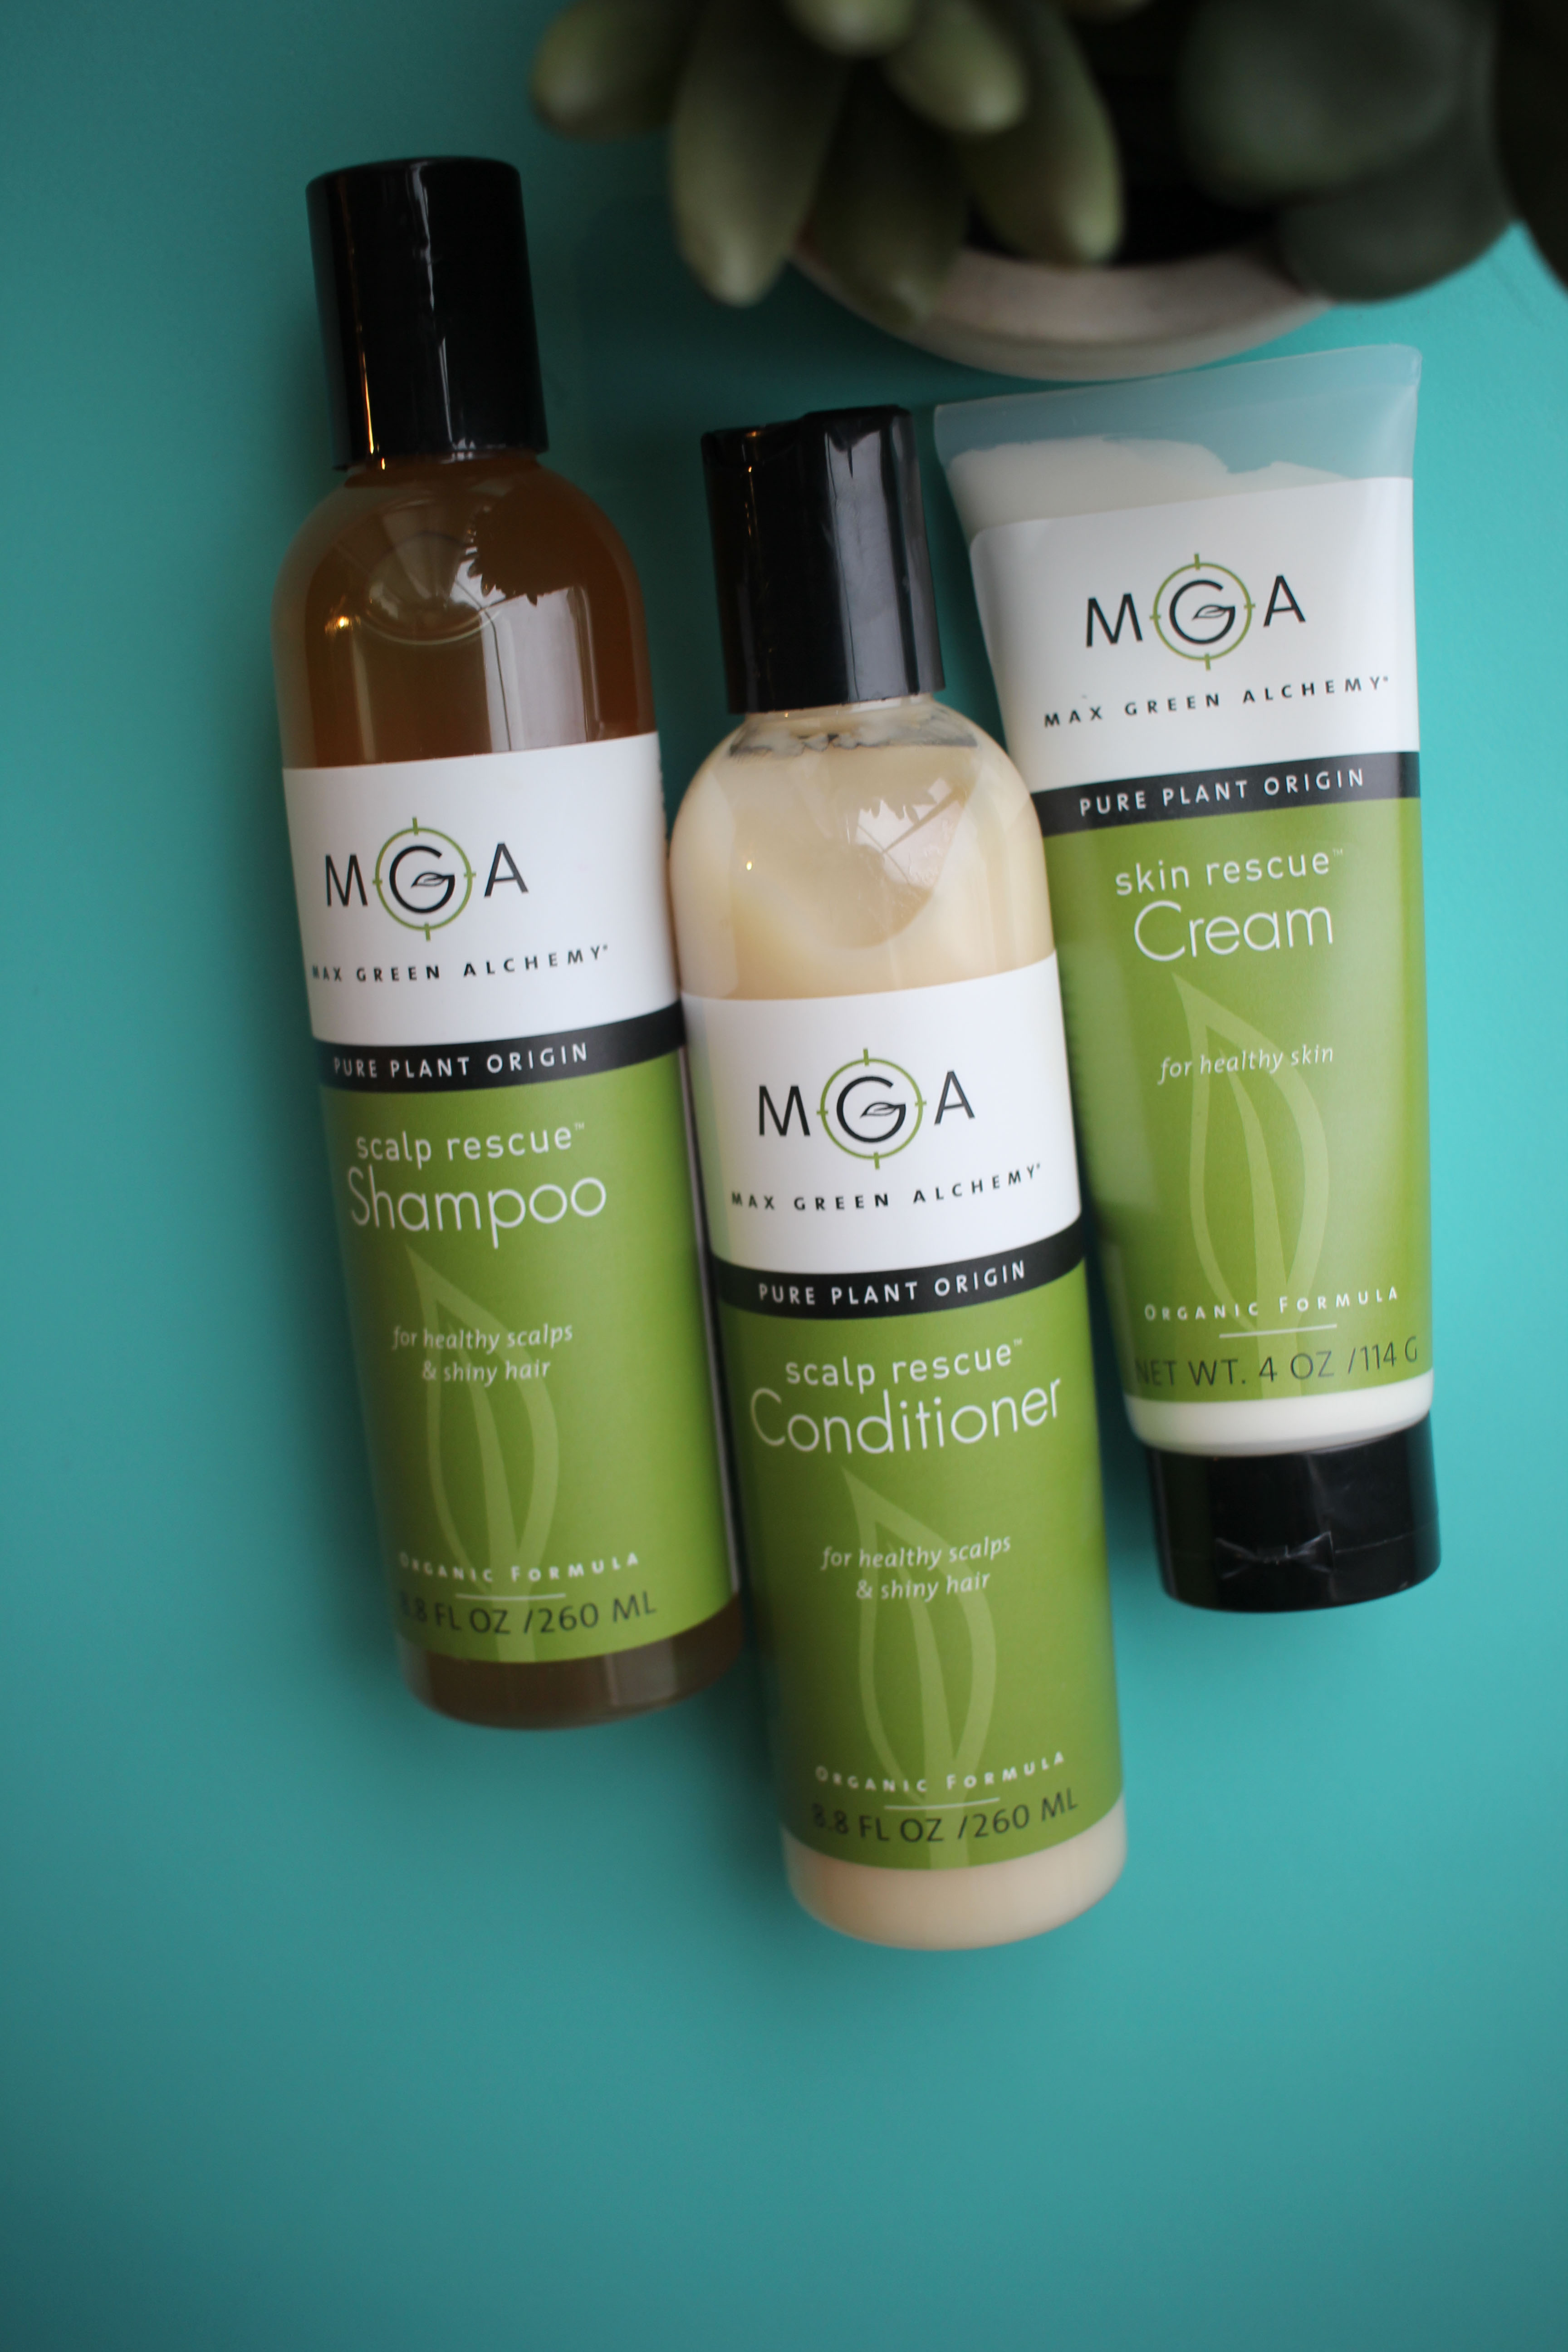 Green beauty shampoo and conditioner that work great against dandruff, and a hand cream that works amazing on chapped skin. Check them out!